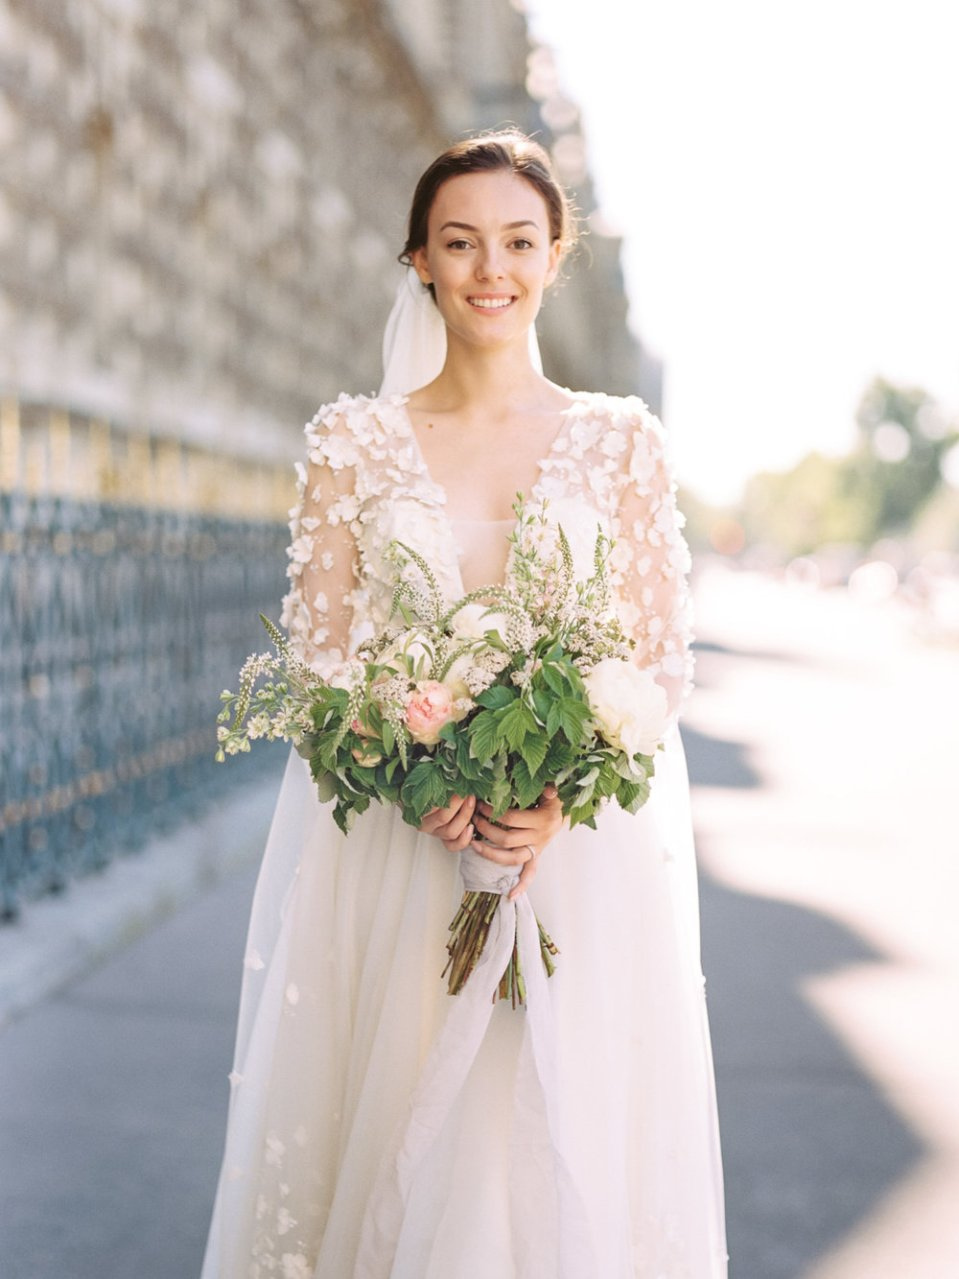 Destination Fine Art Wedding Editorial Photography in Paris with Max Chaoul -35.jpg